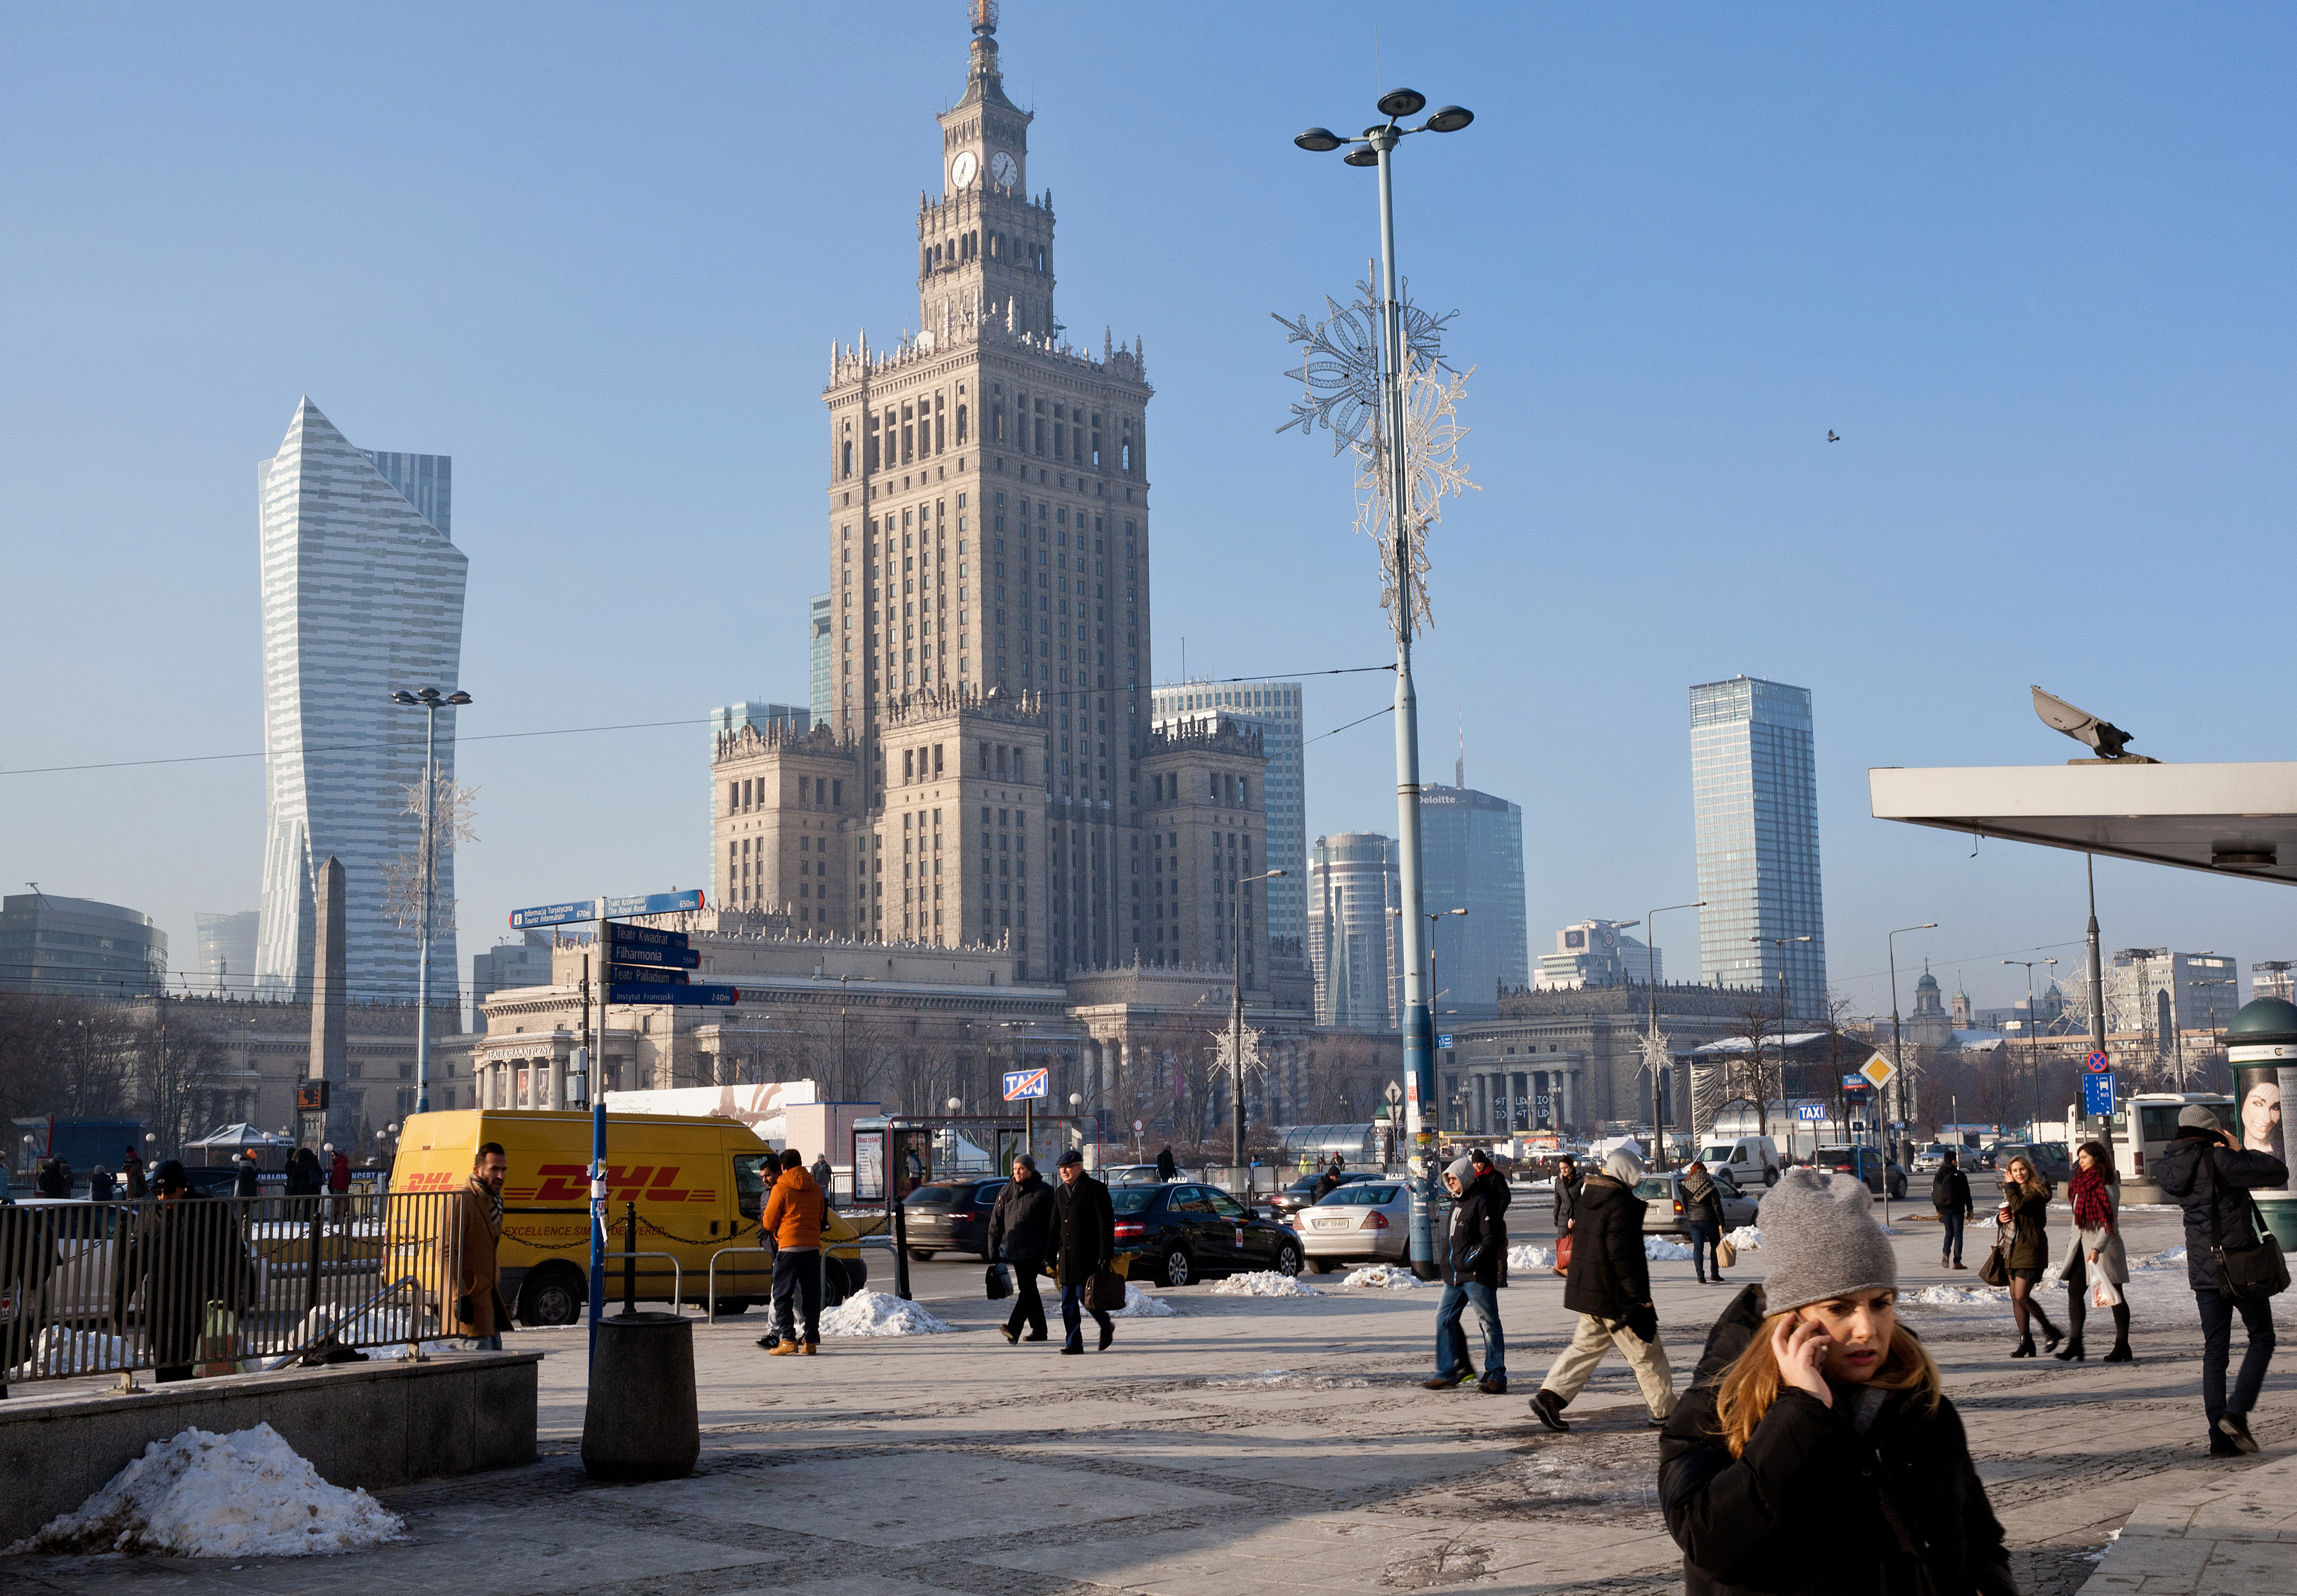 The Palace of Culture and Science, center, in central Warsaw, Poland, on Monday, Jan. 9, 2017